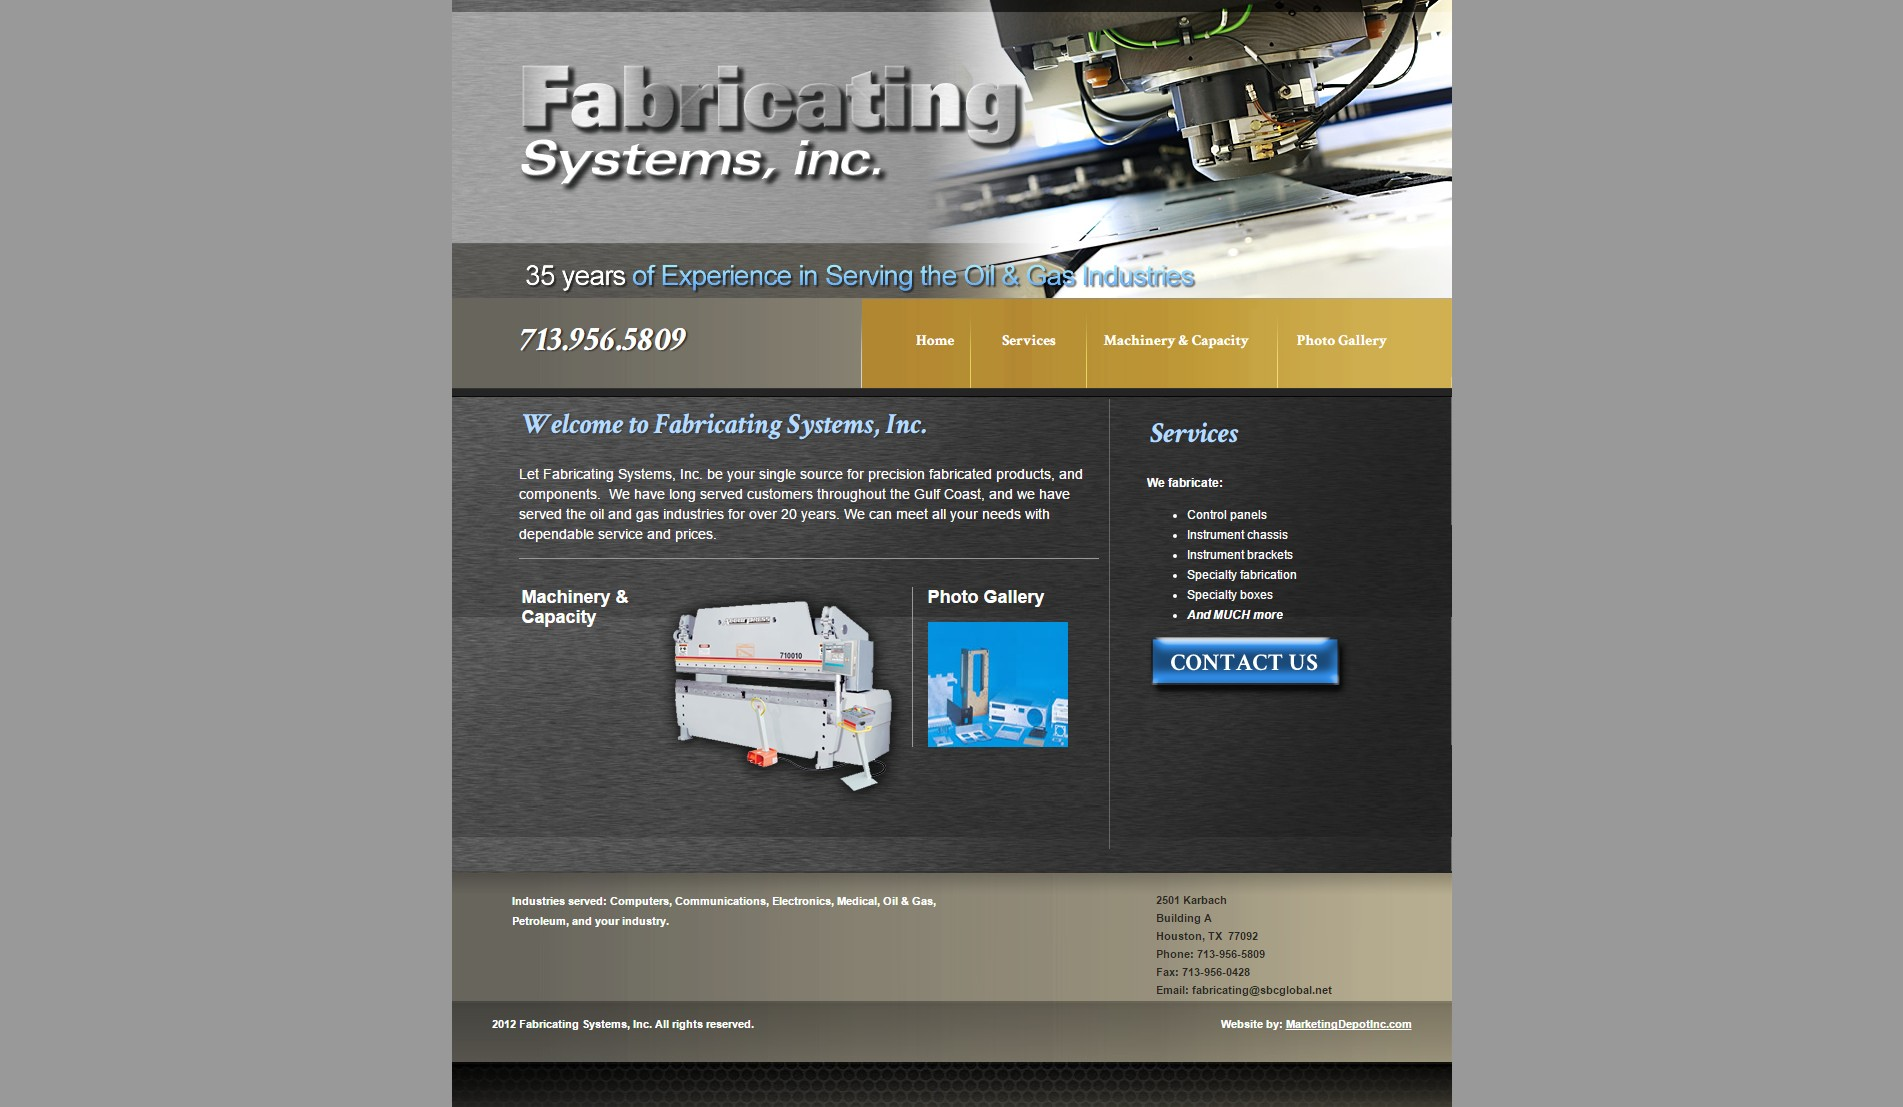 Fabricating Systems